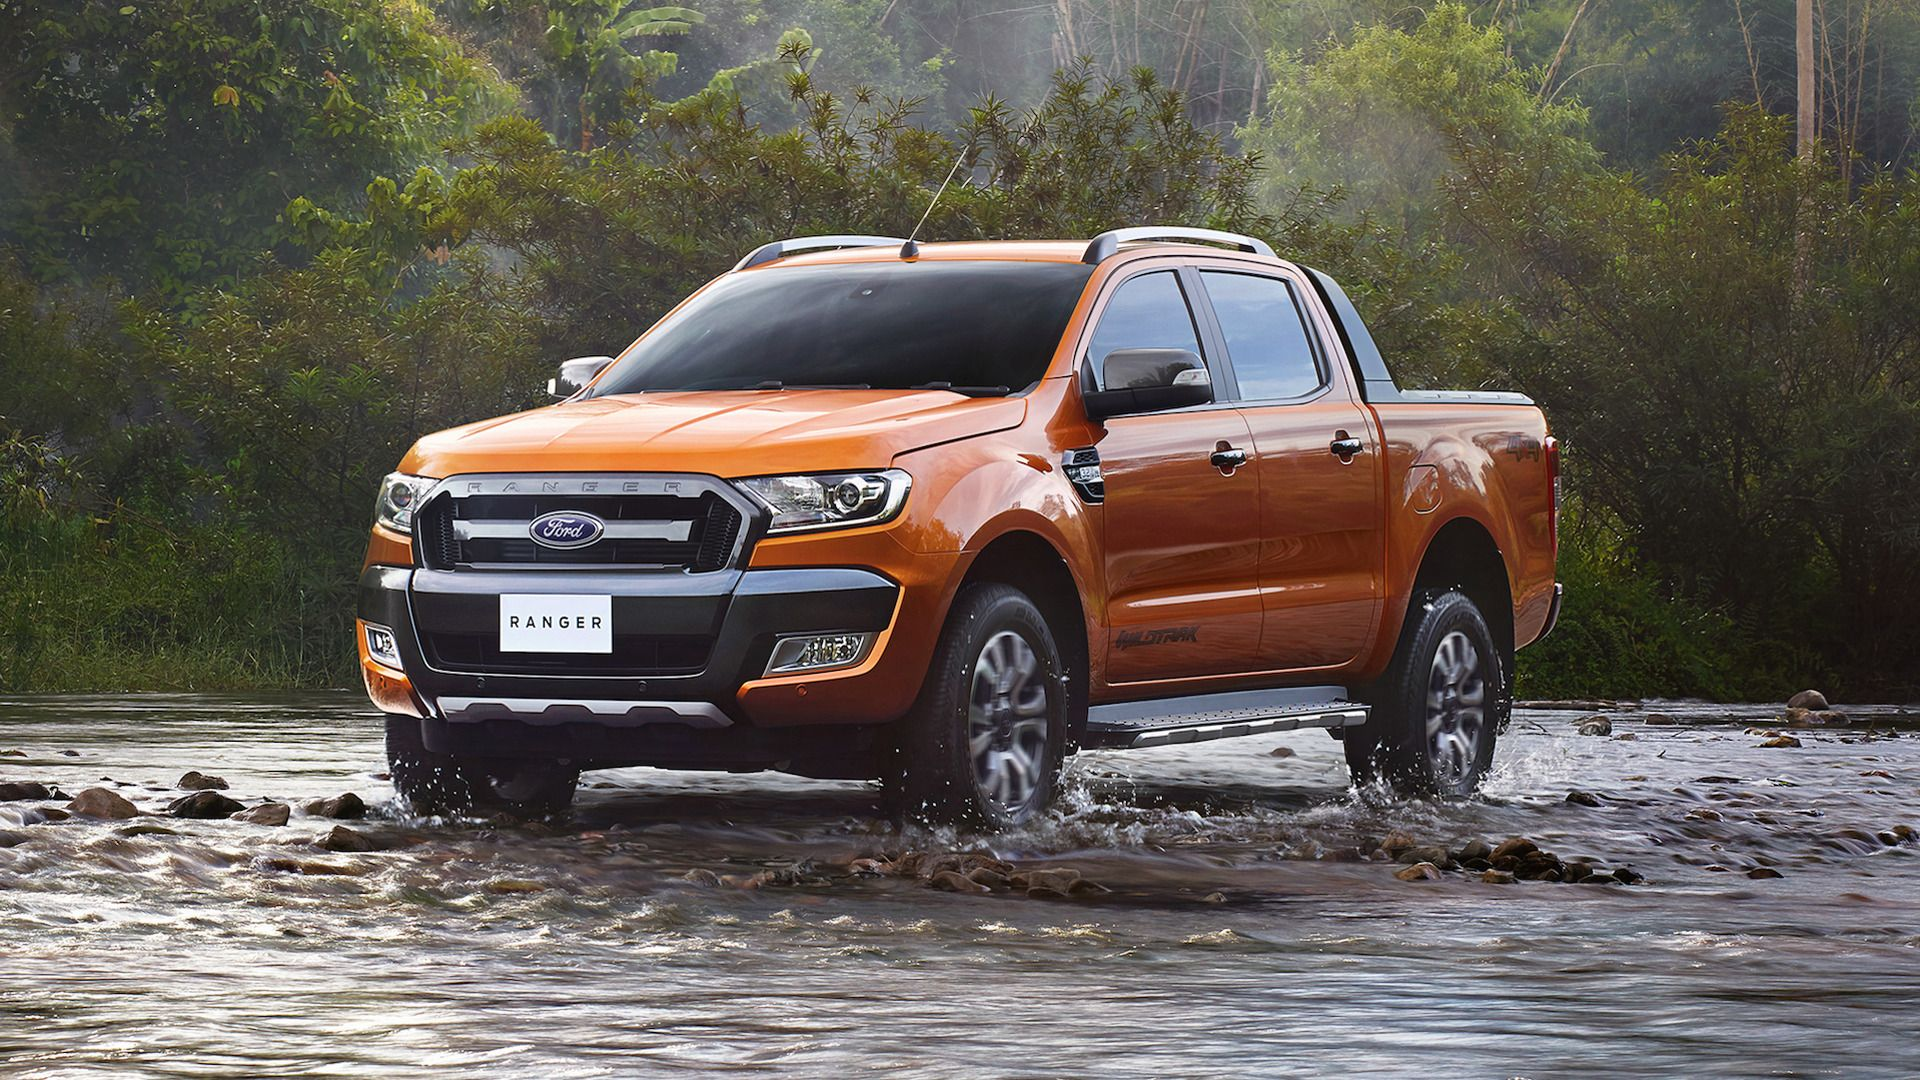 Ford Will Revive The Ranger Nameplate In The U S For The 2019